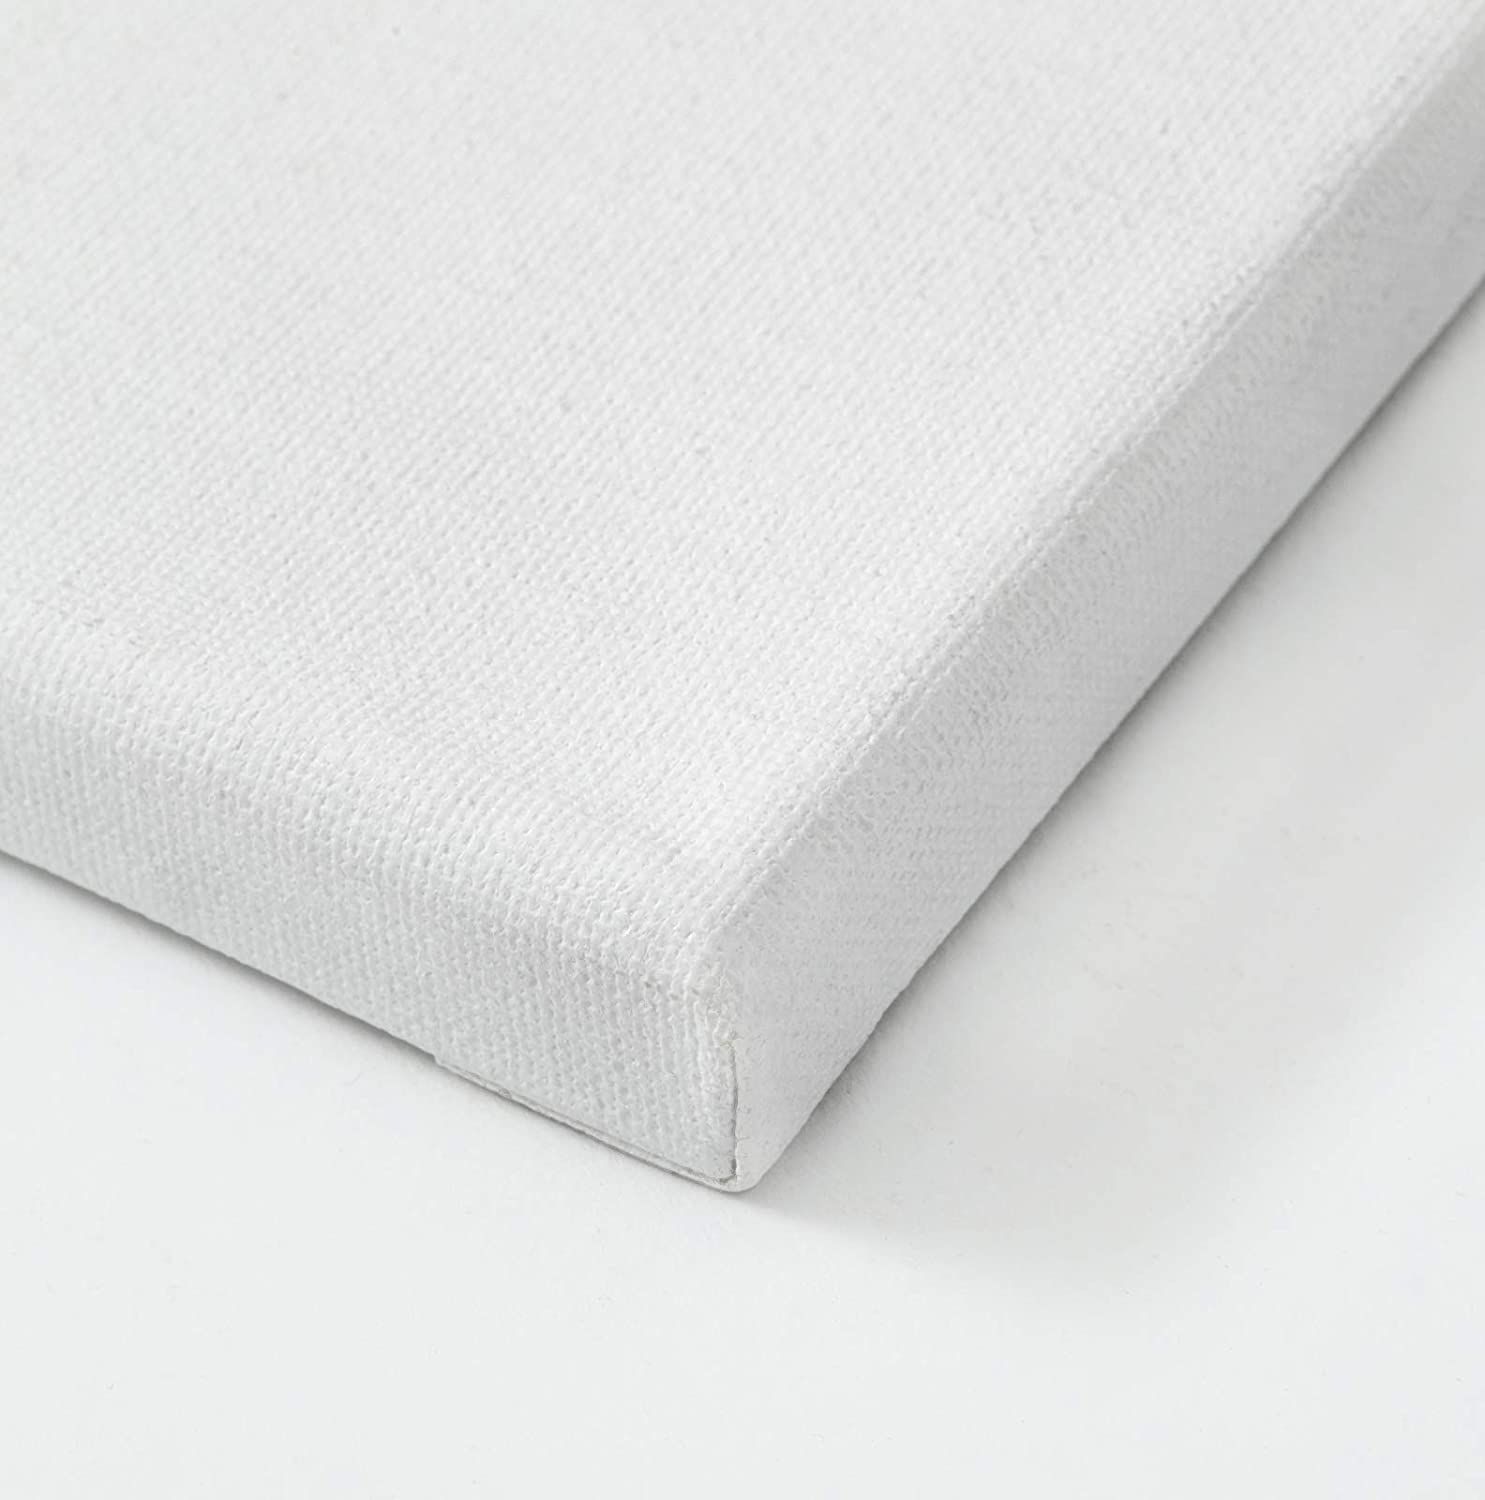 miniature 4 - Americanflat Stretched Canvas in White 100% Cotton Wooden Frames & Acid Free